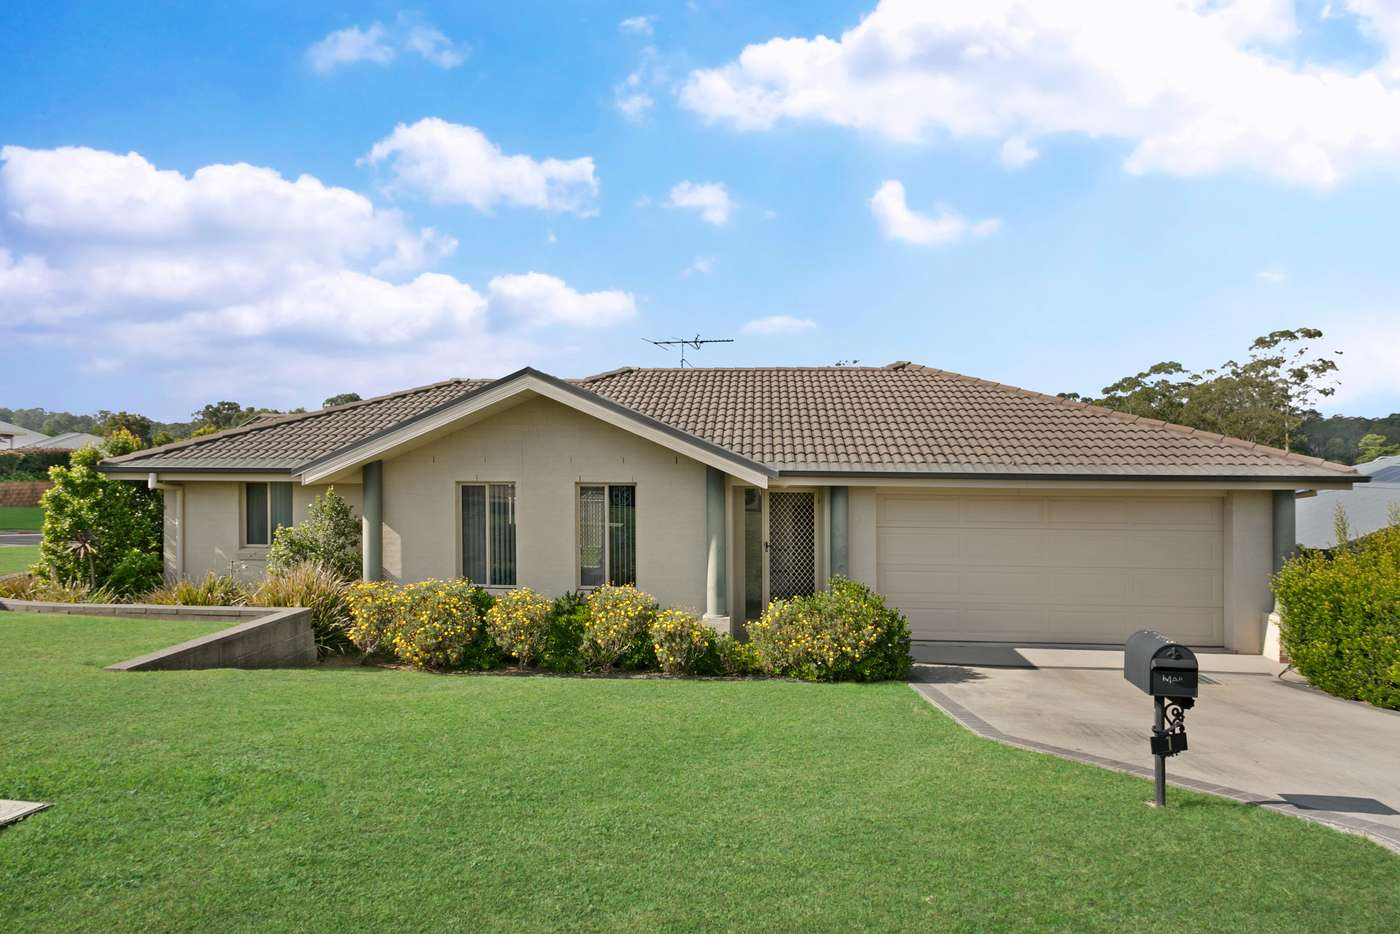 Main view of Homely house listing, 1 Tipperary Drive, Ashtonfield NSW 2323